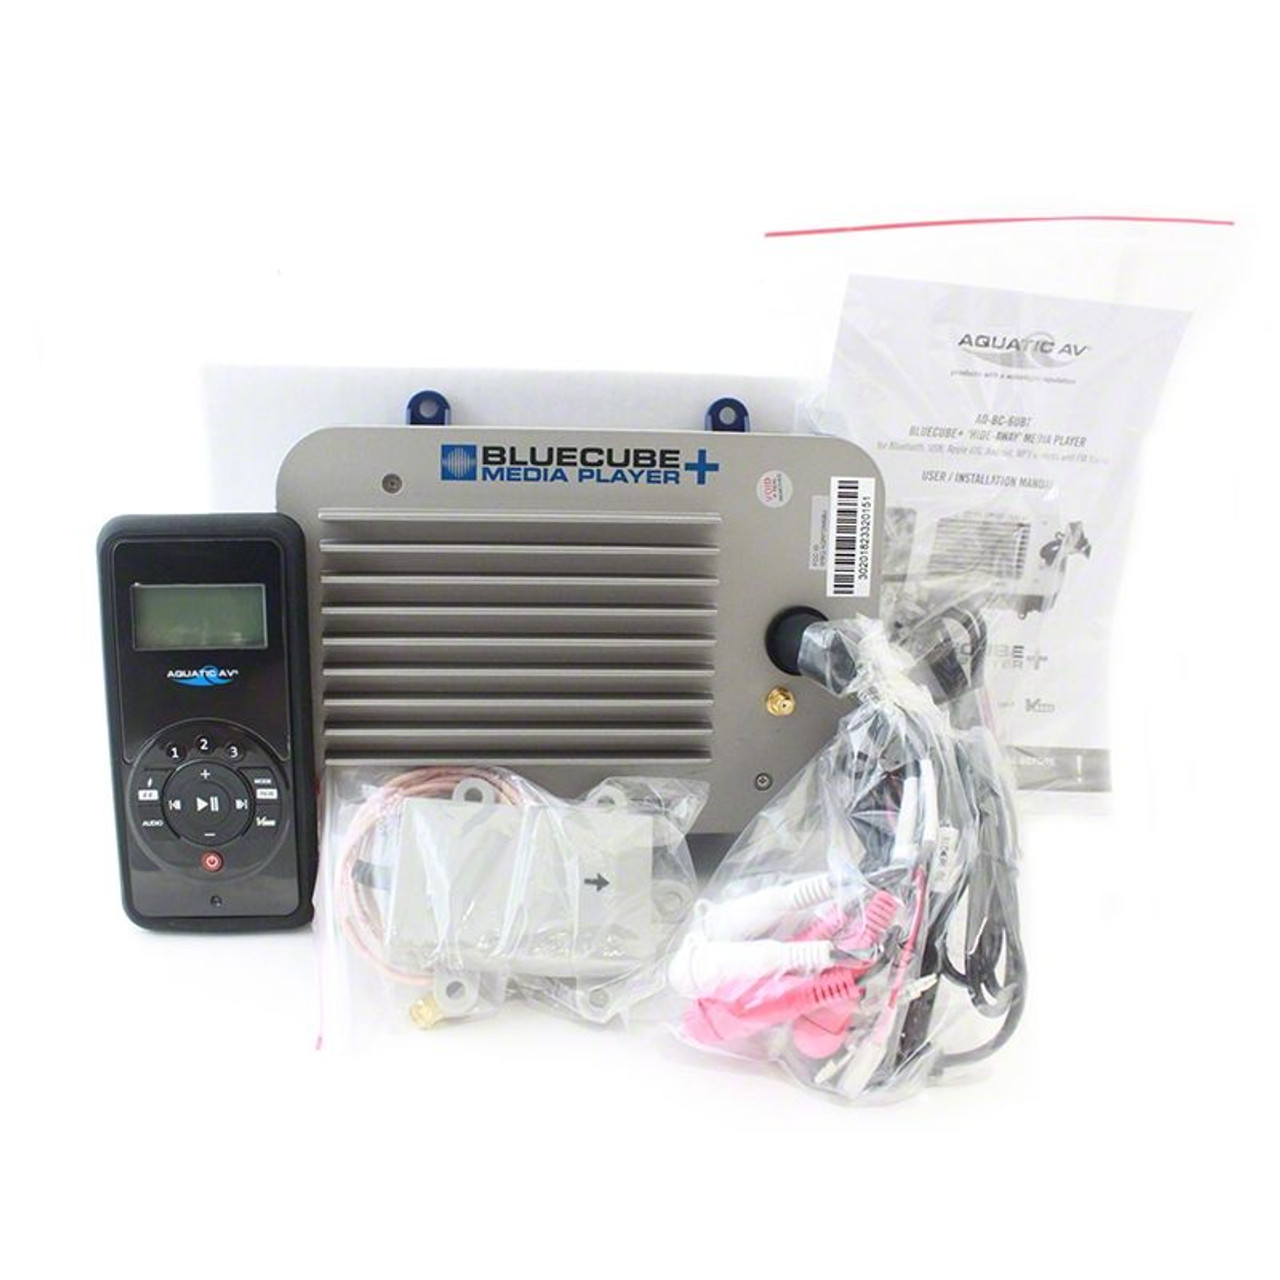 X551408 - 6 UBT Deluxe Air Stereo